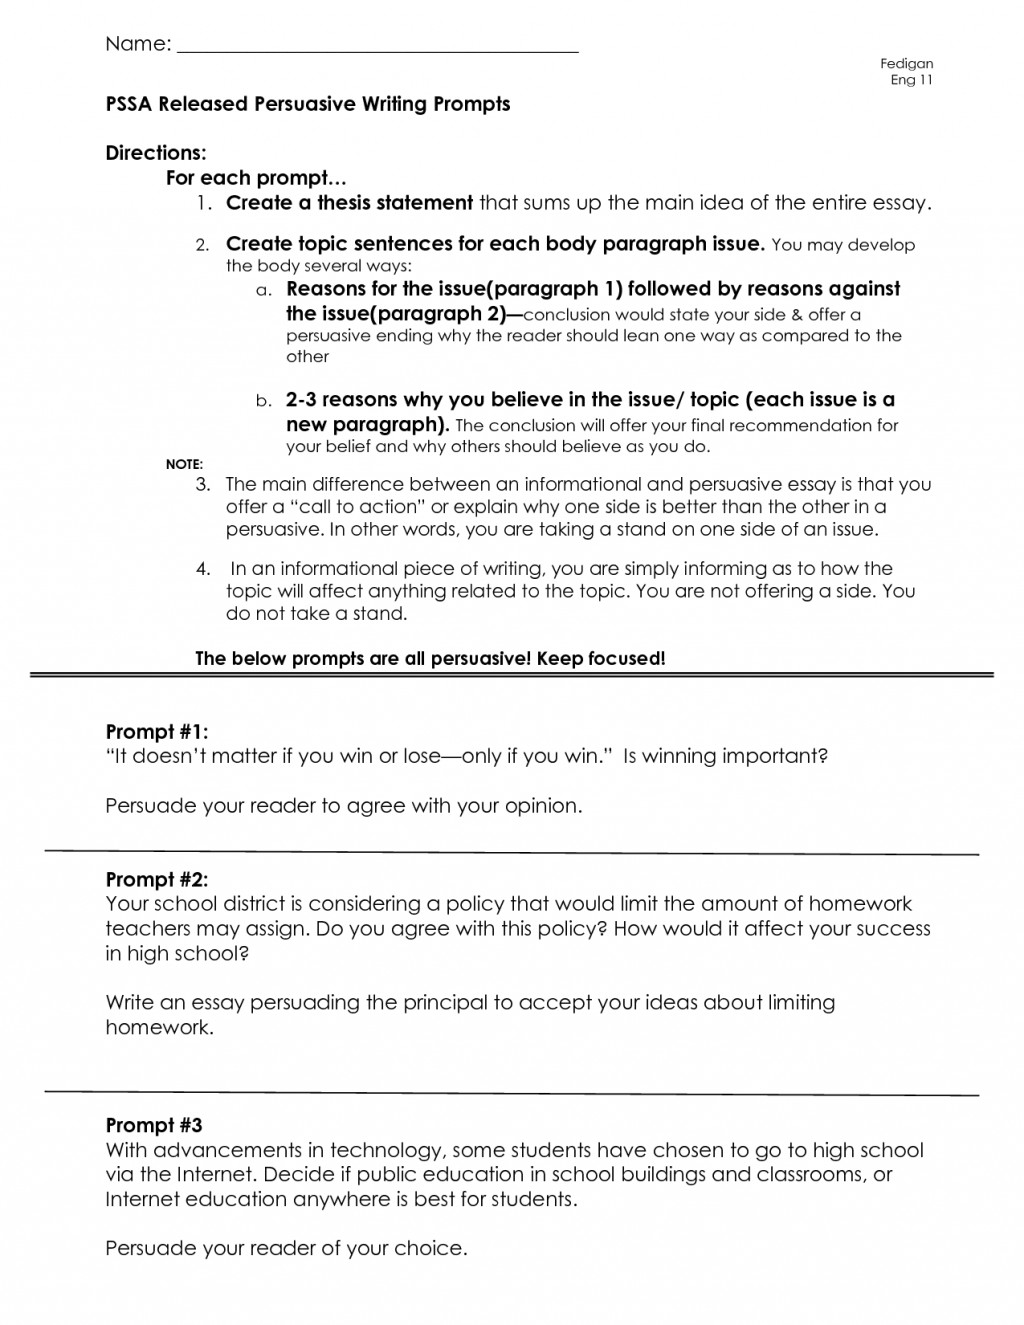 014 Persuasive Essay 6th Grade Writing Prompts 654695 Best College Creative For Macbeth High School Economics Large